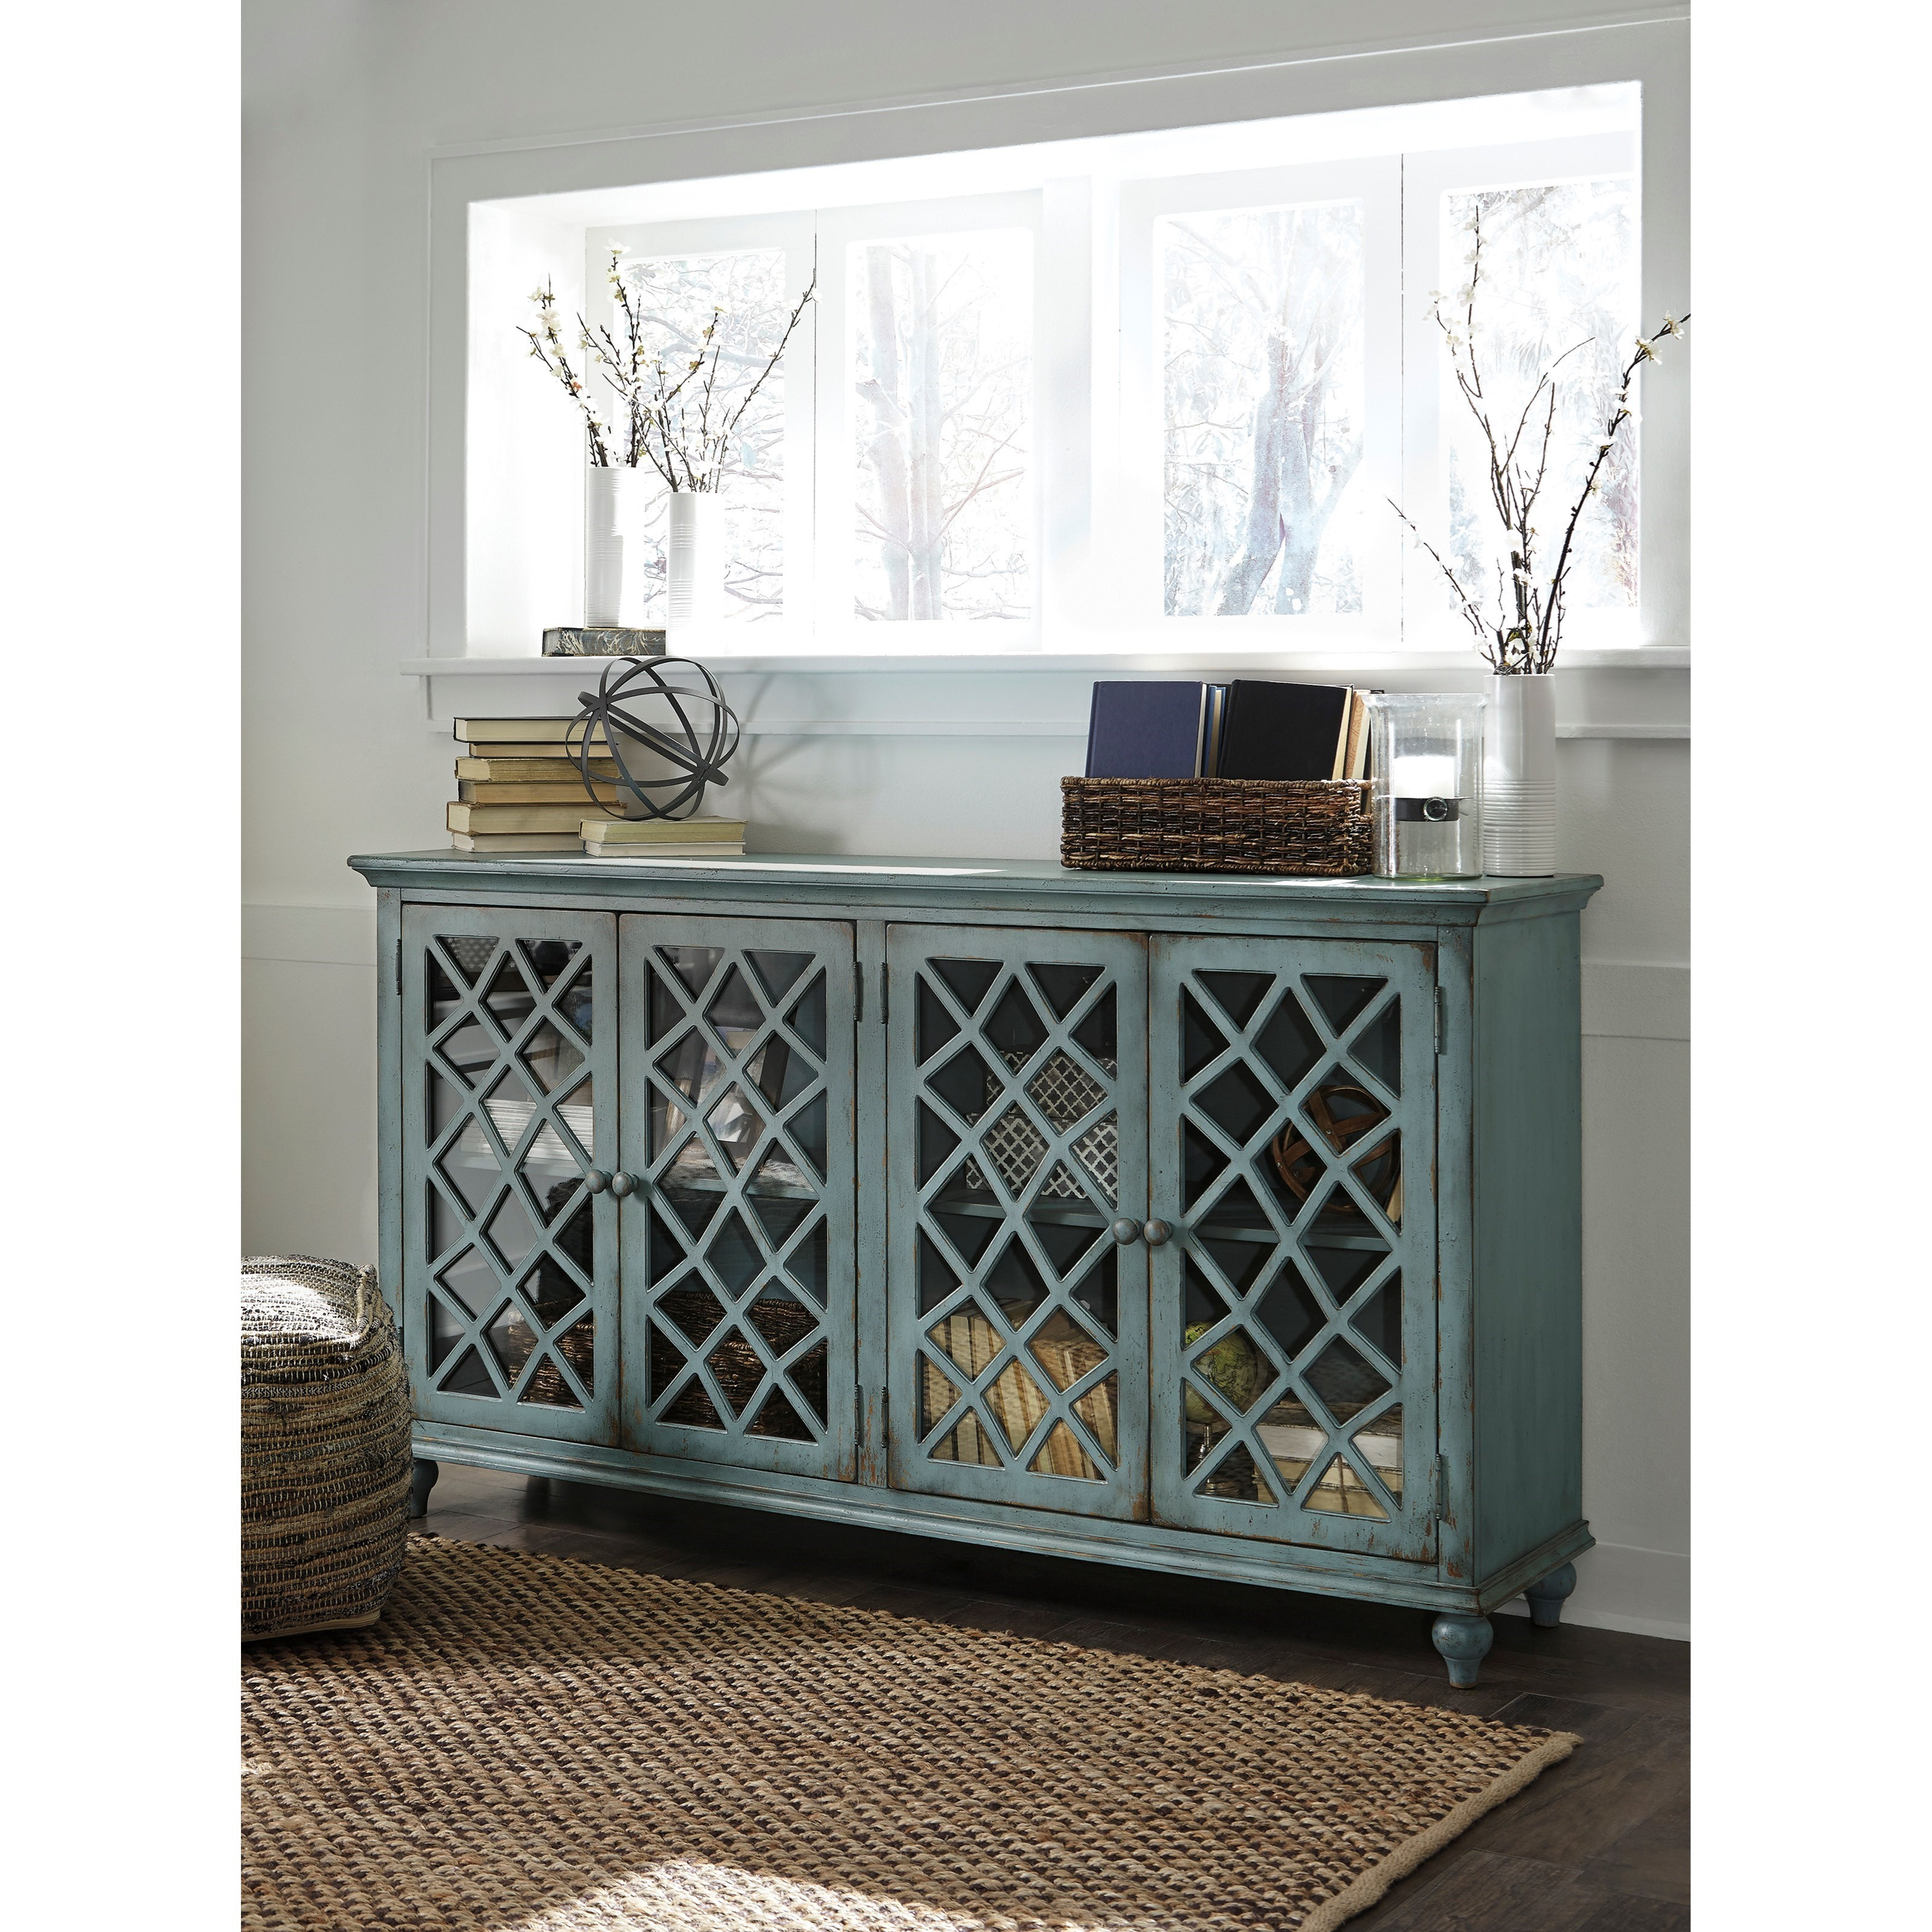 lattice glass door accent cabinet antique teal finish products signature design ashley color cottage accents table with doors tiffany look alike lamps tiled garden counter height